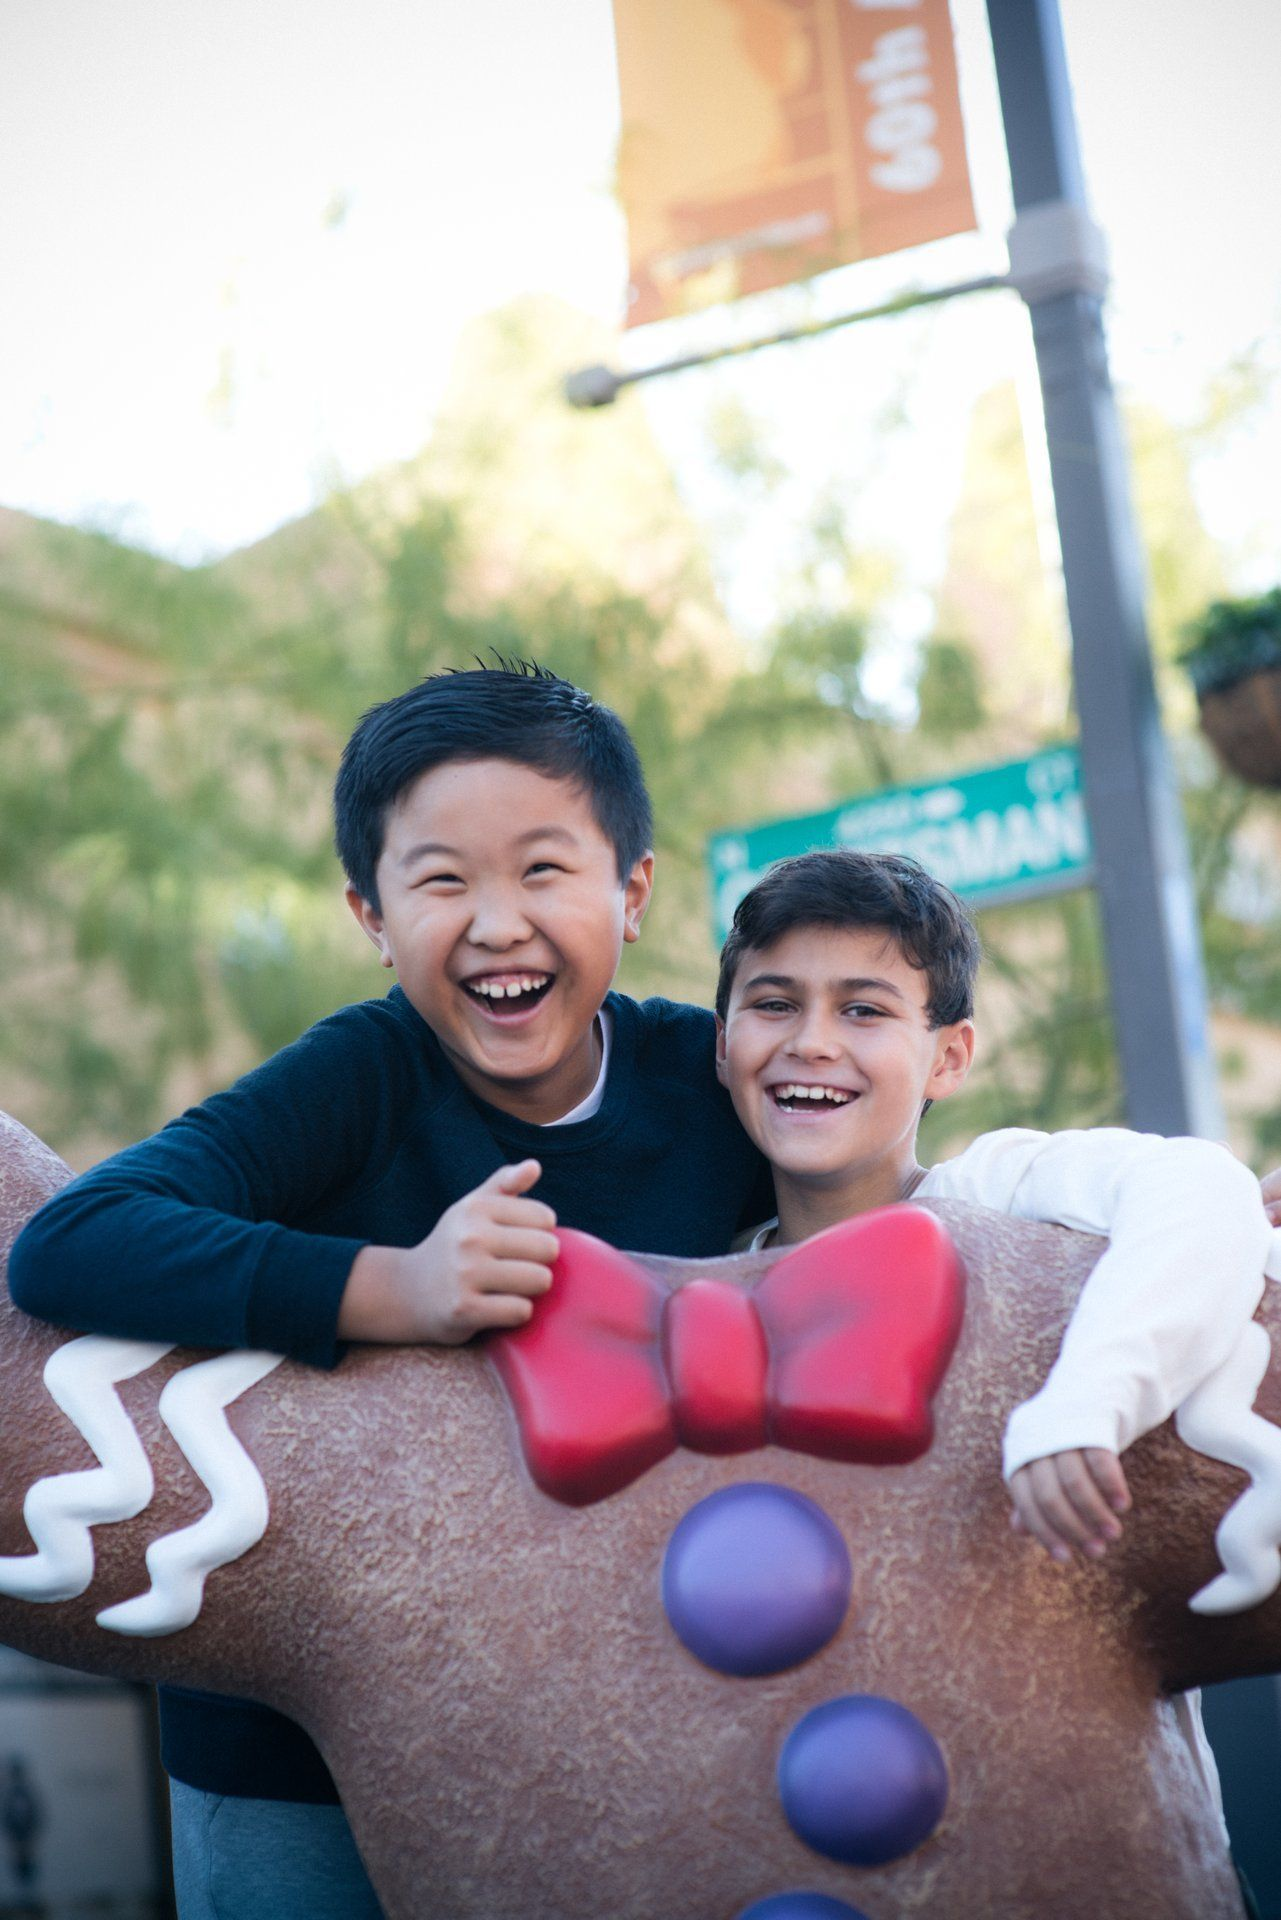 Pose with a gingerbread man in Old Town Scottsdale during Scottsdazzle